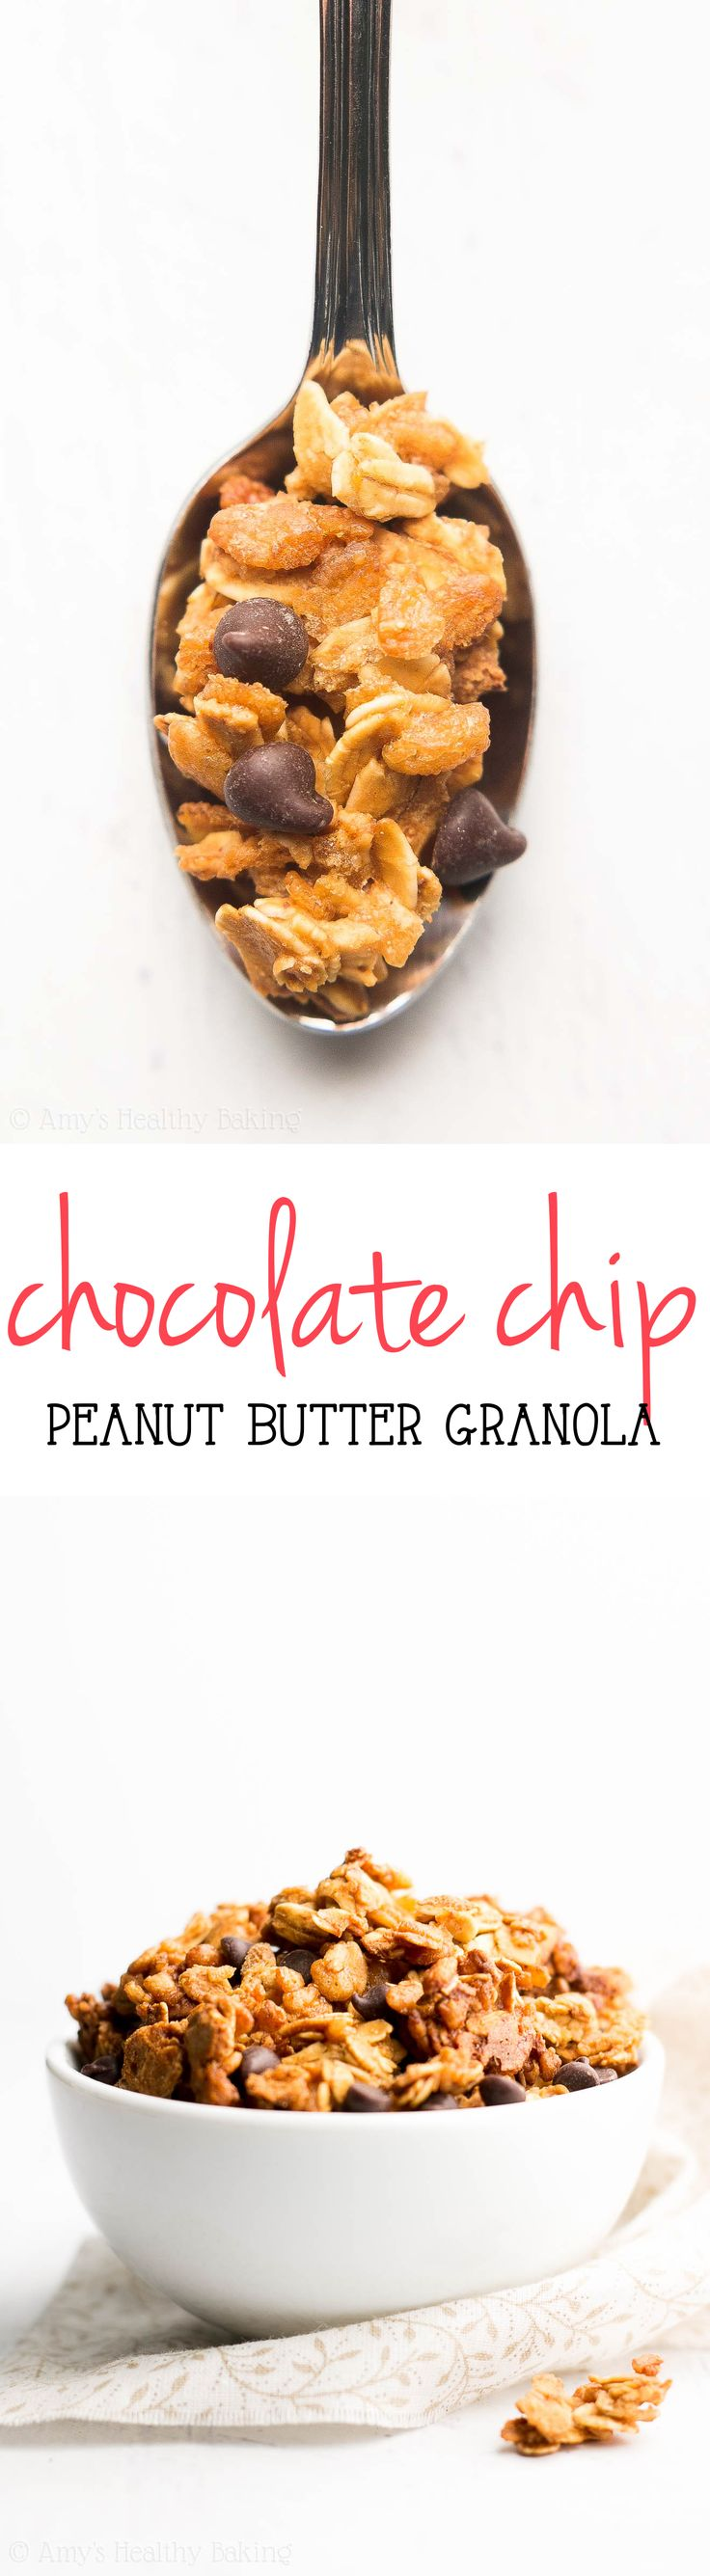 Healthy Chocolate Chip Peanut Butter Granola -- just 6 ingredients & lots of crunchy clusters! Like eating Reese's PB cups for breakfast with NO guilt!